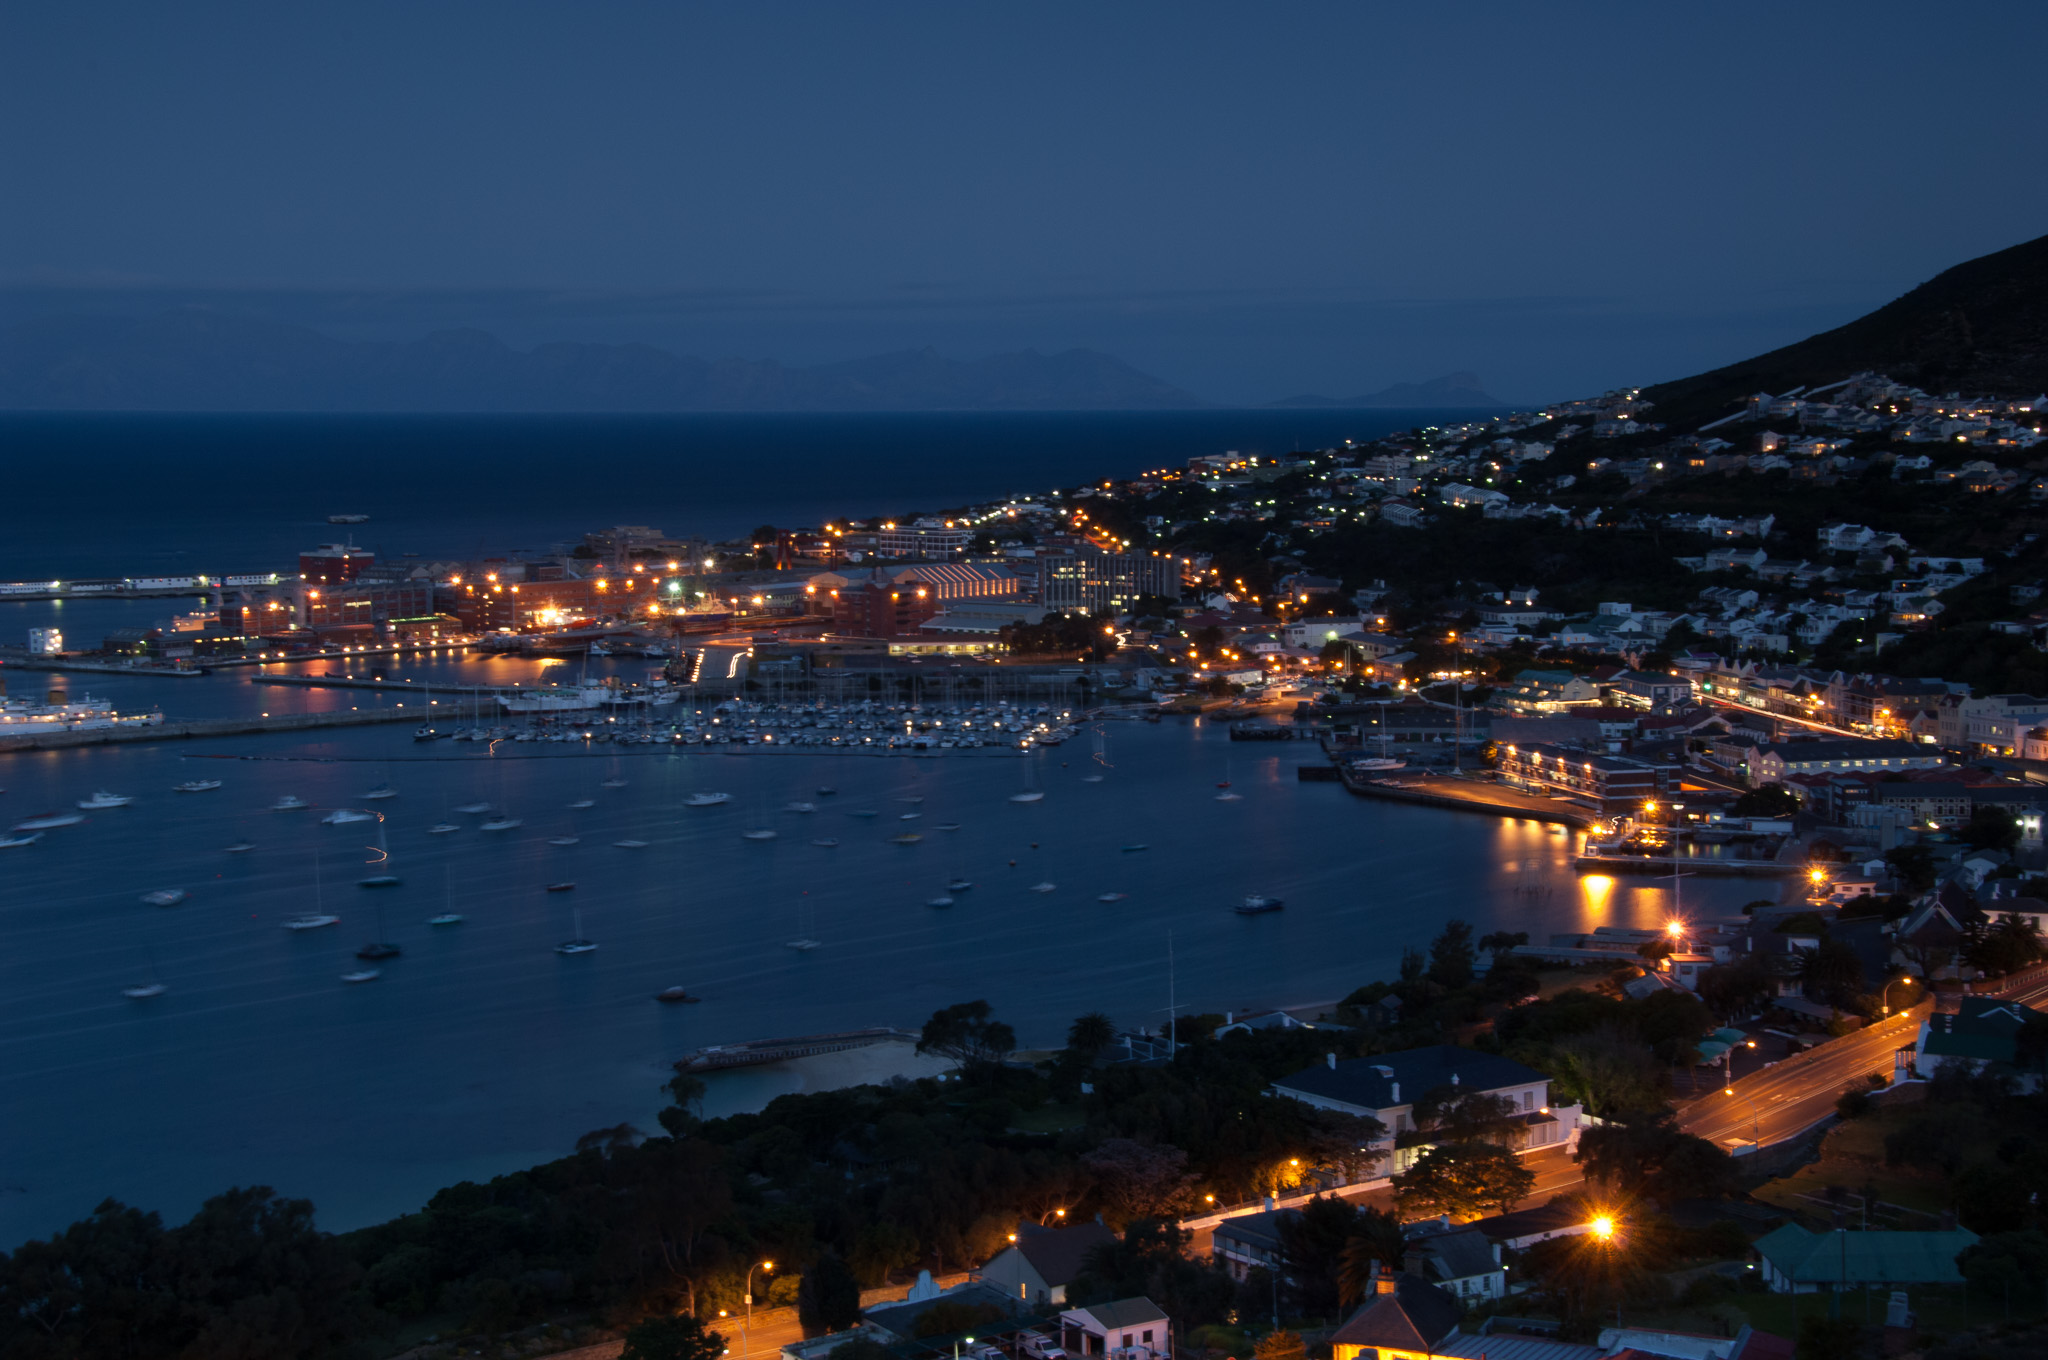 Simon's Town Harbour, South Africa